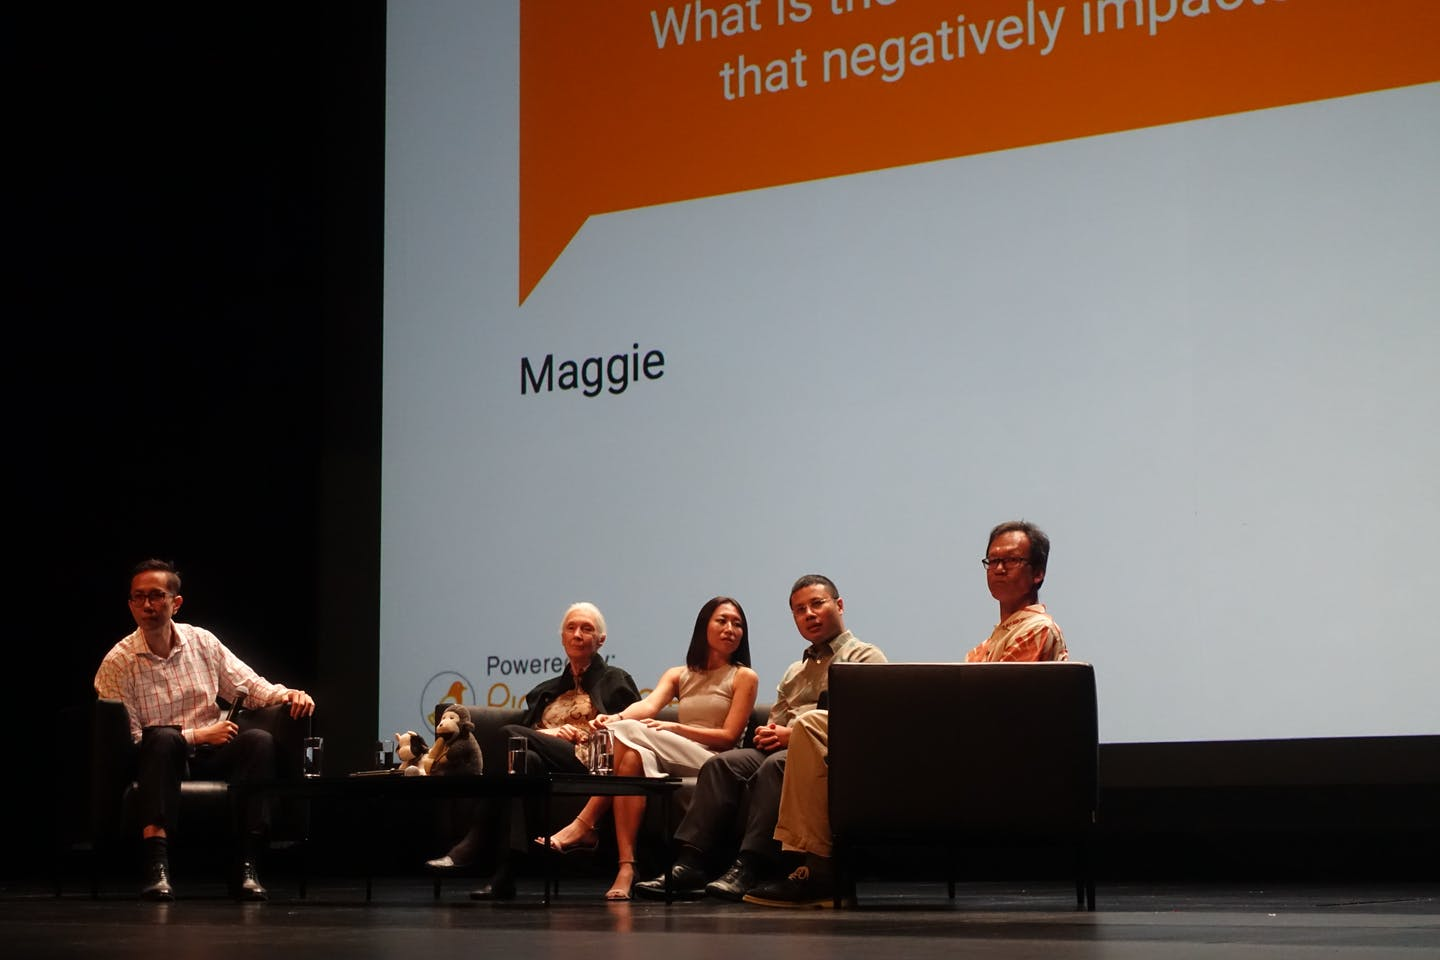 Jane Goodall panel discussion in Singapore, MES Theatre